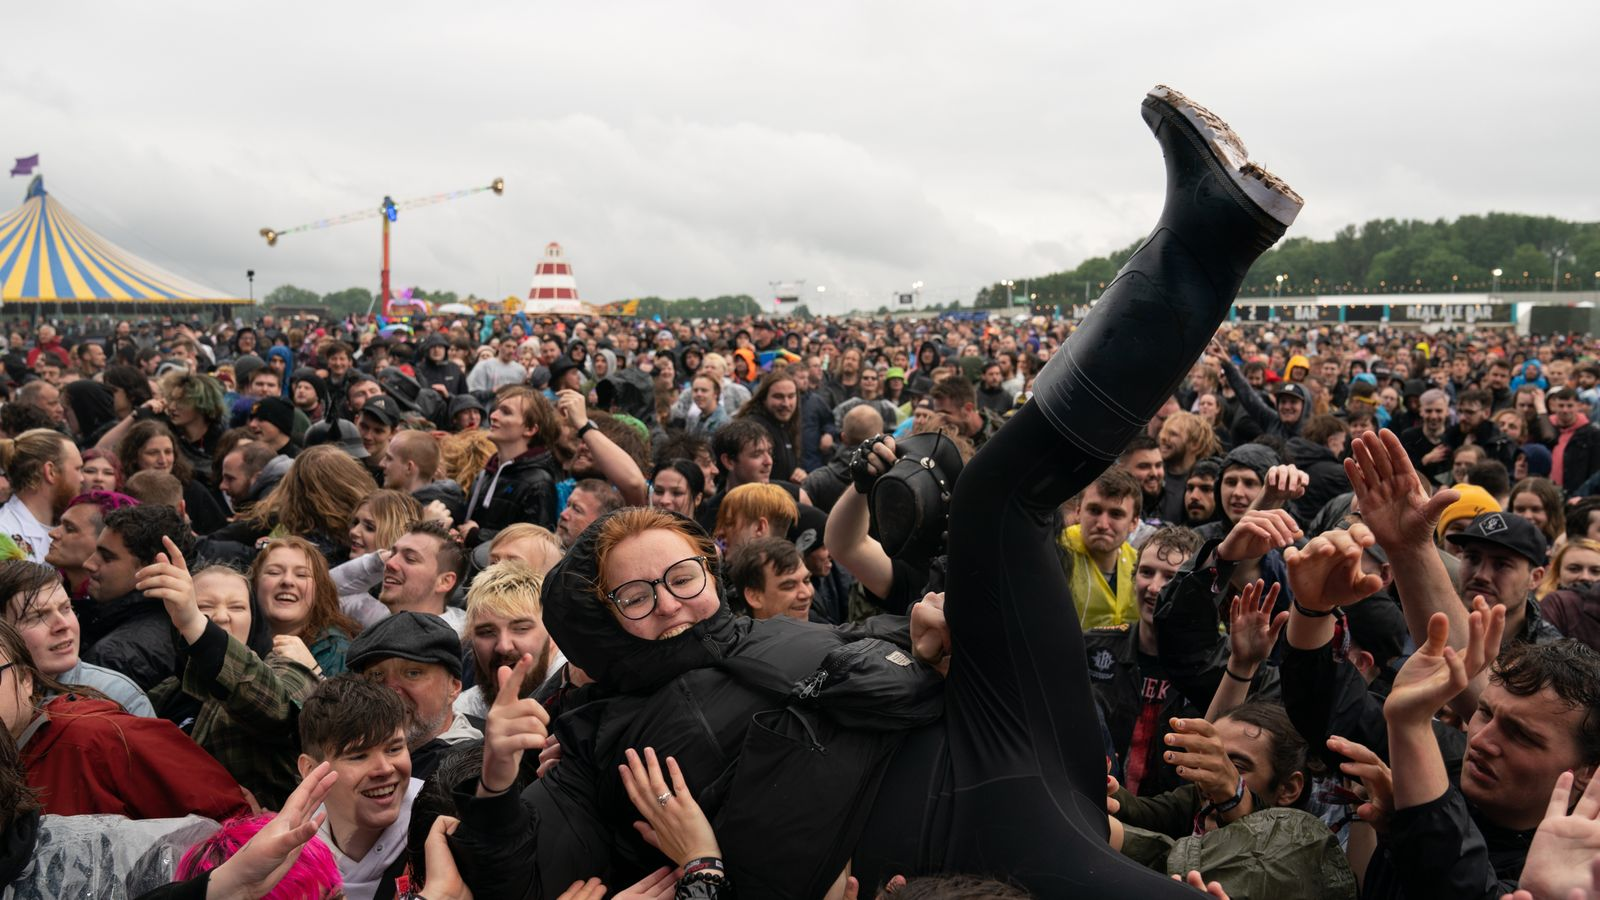 Mosh pits, ponchos and mask-free crowds: 'Euphoria' as revellers brave rain at Download Festival thumbnail